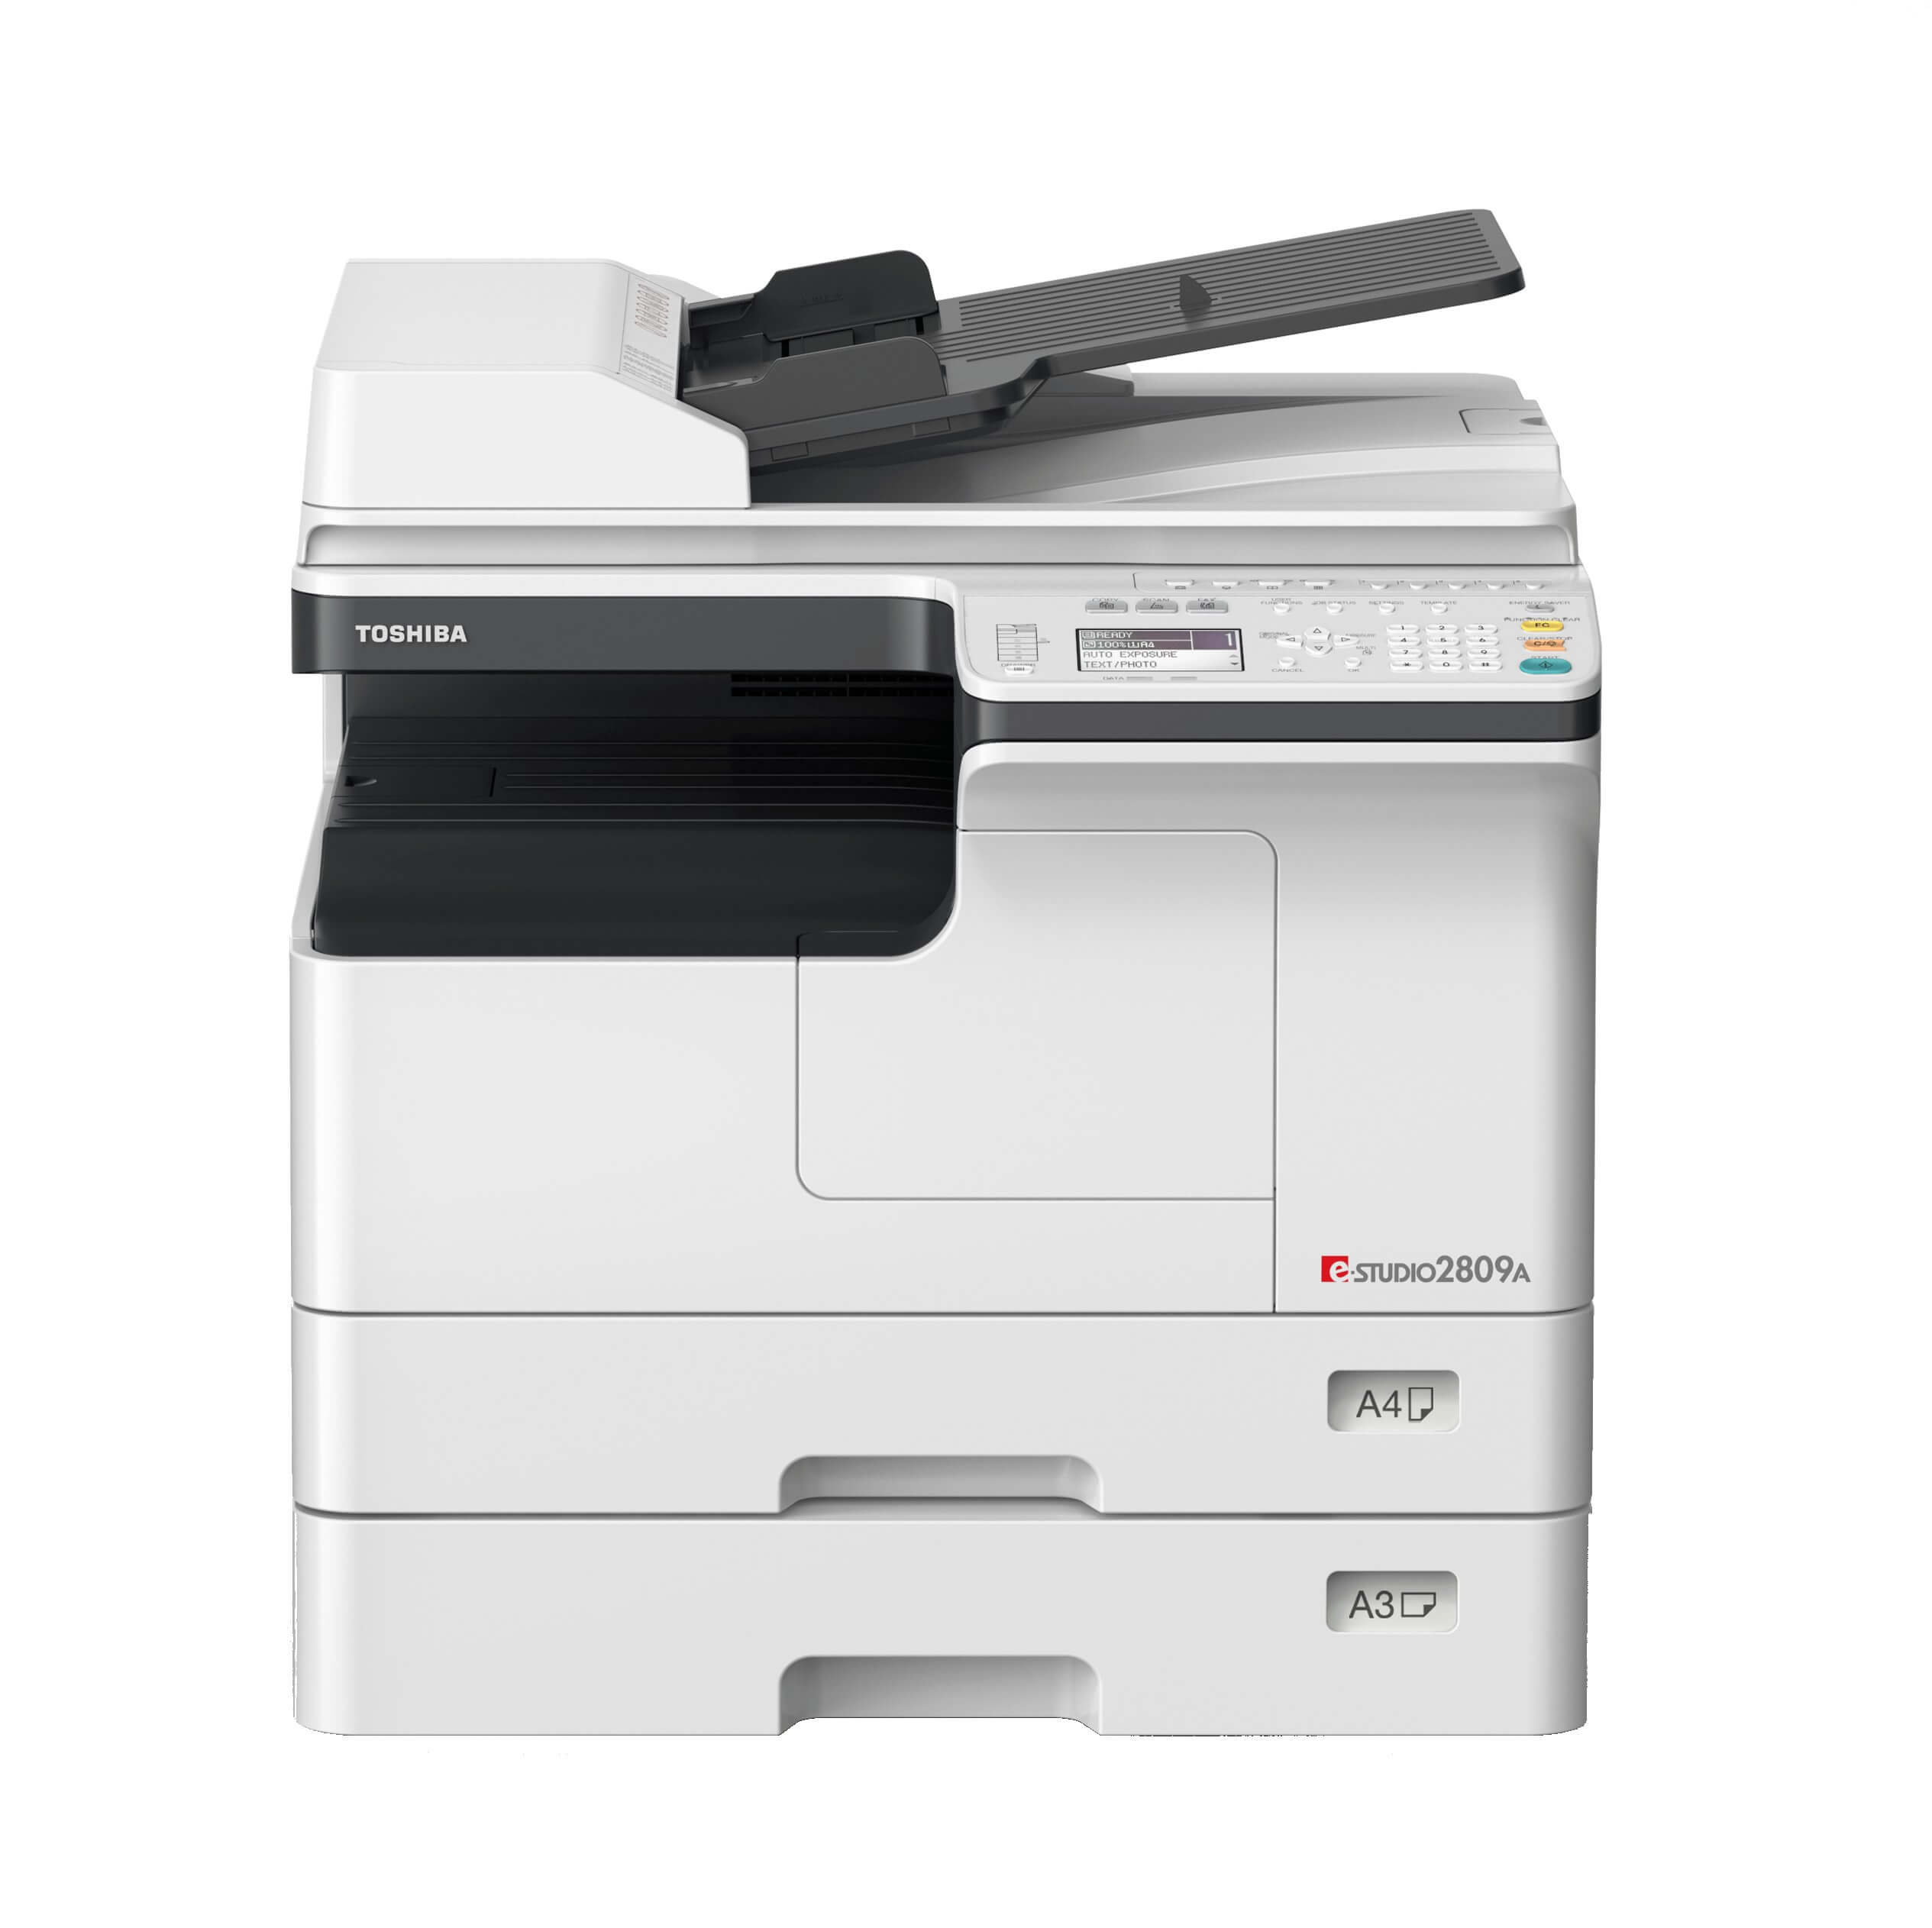 Toshiba e-Studio 2809A digital photocopier